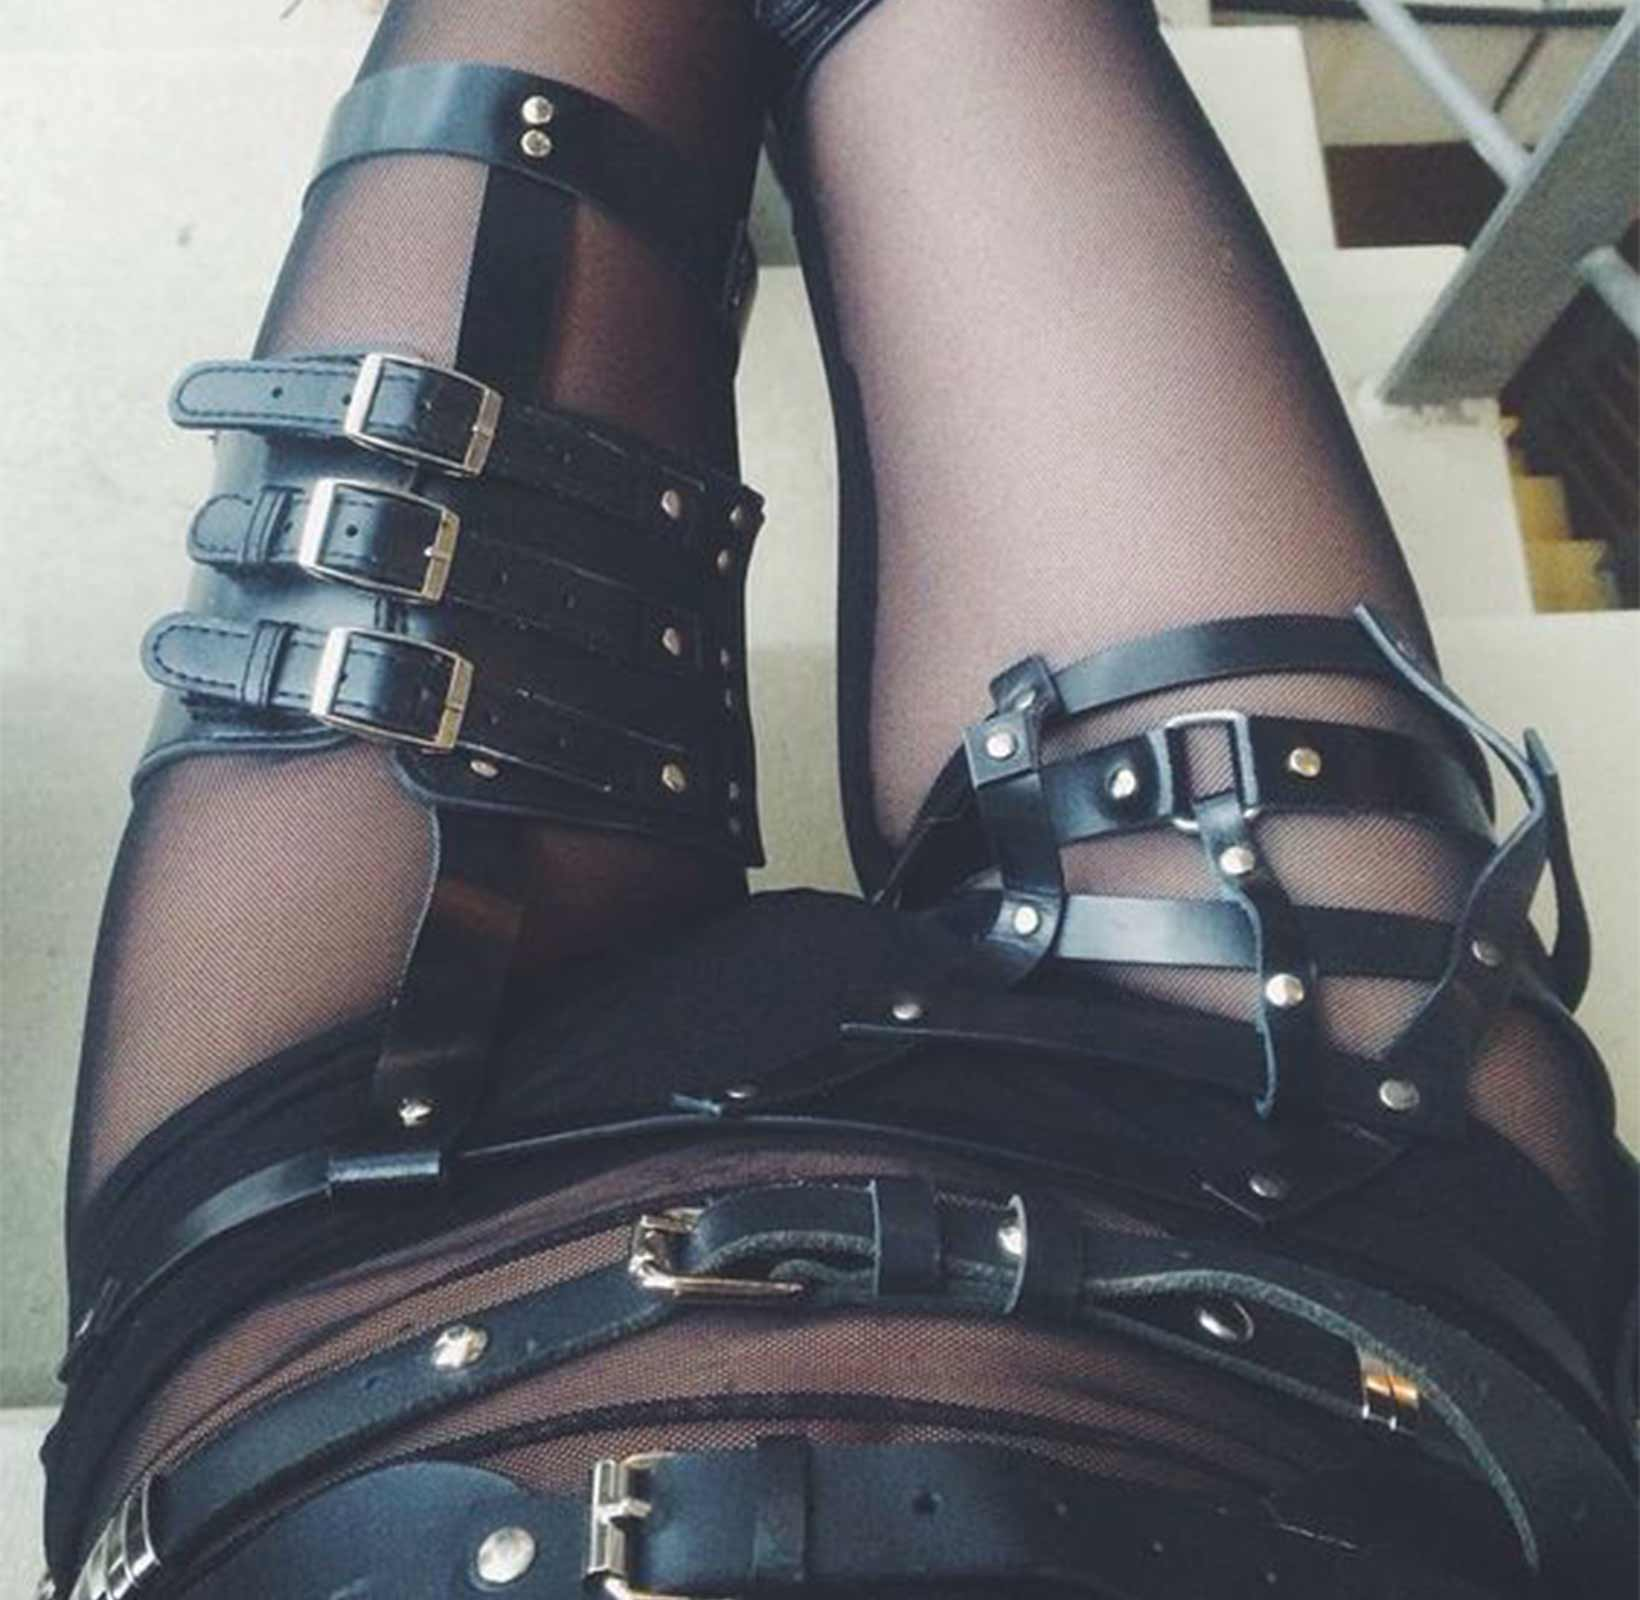 Fetishes: leather straps and belts